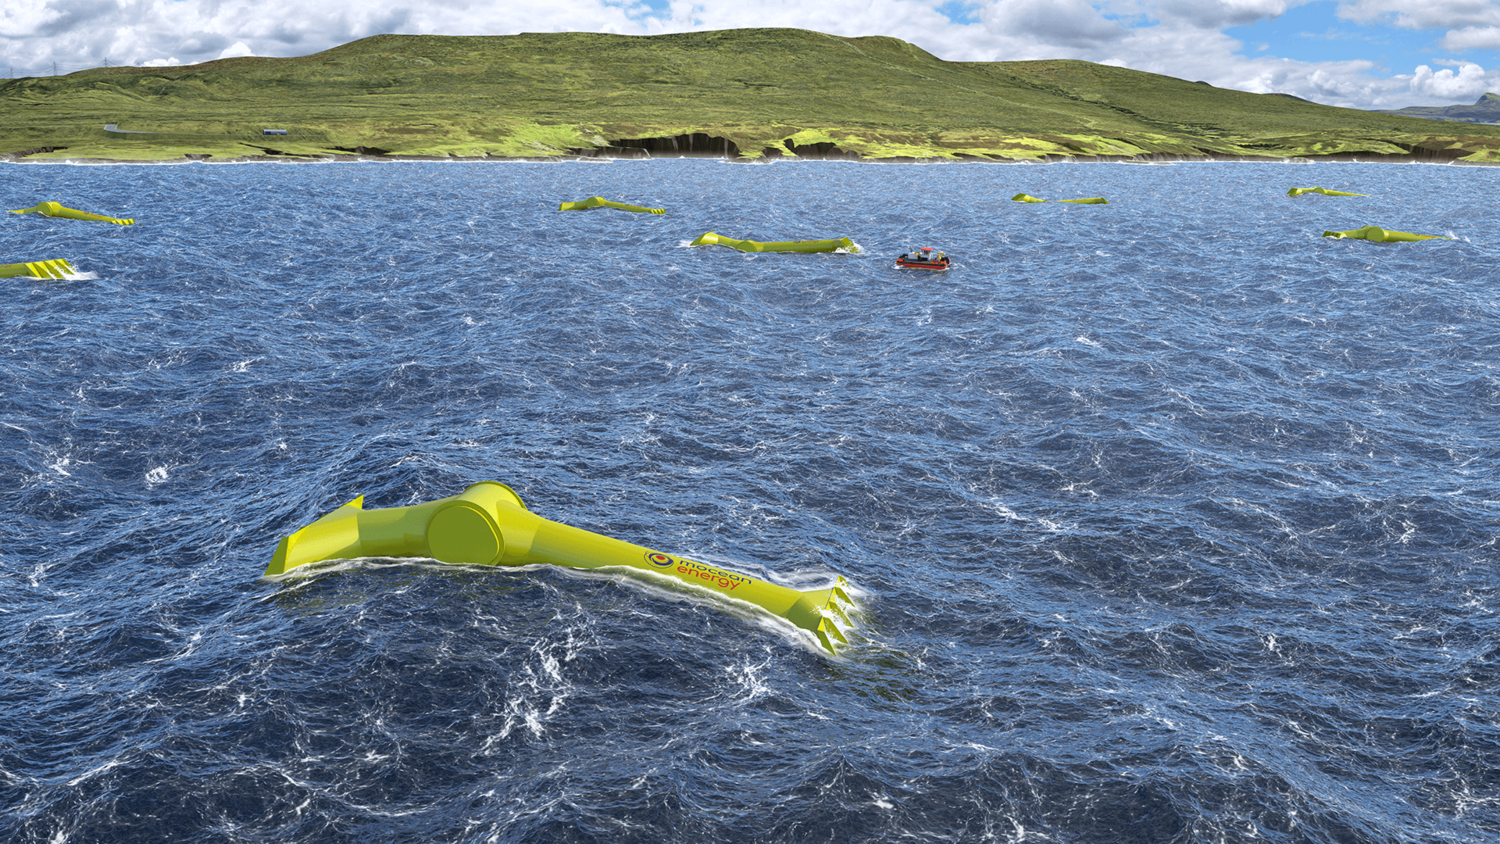 70m long Mocean Blue Horizon Wave Energy Generator farm, planned to be located off the coast of Scotland.